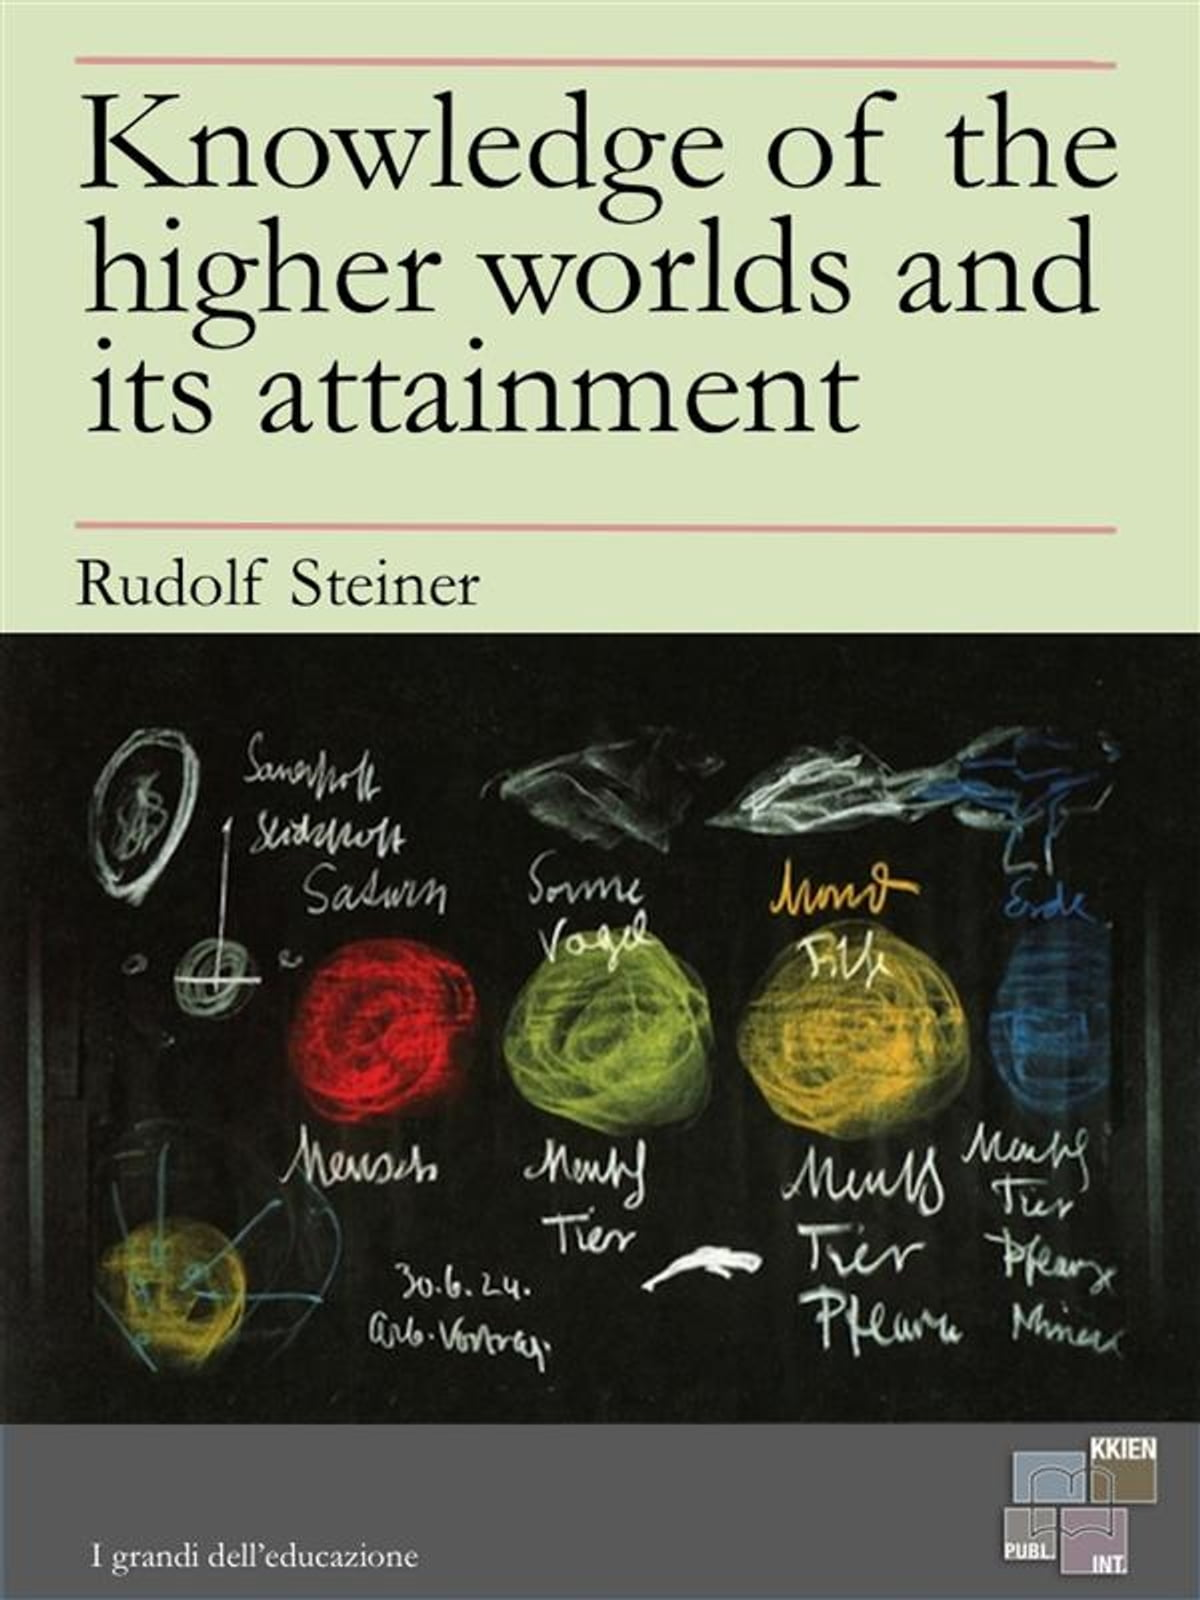 Knowledge of the higher worlds and its attainment eBook by Rudolf Steiner -  9788898473434 | Rakuten Kobo